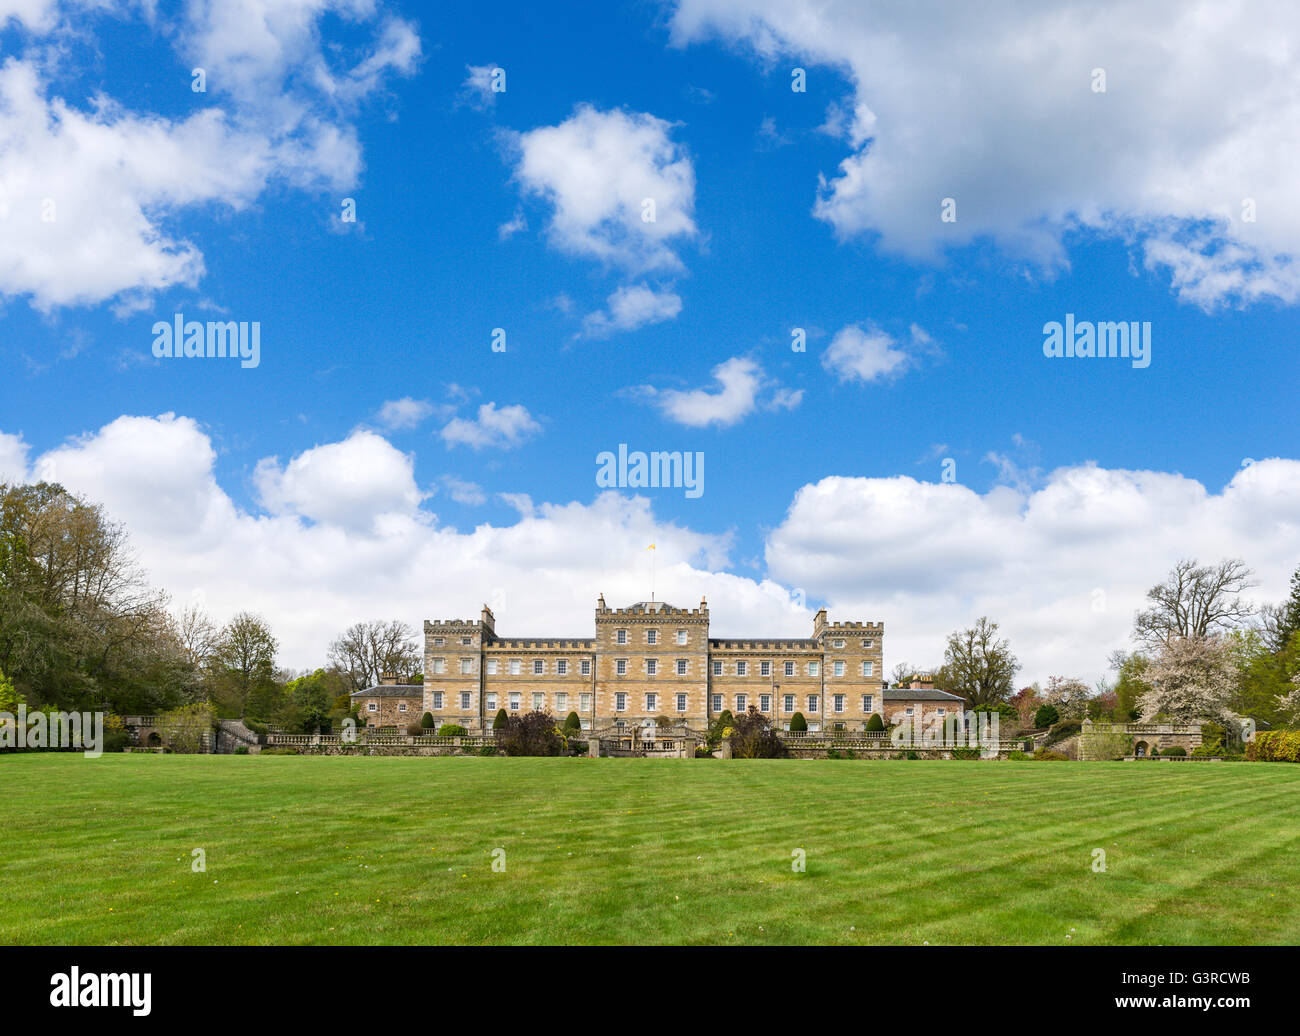 The rear of Mellerstain House, Gordon, Scottish Borders, Scotland, UK - Stock Image